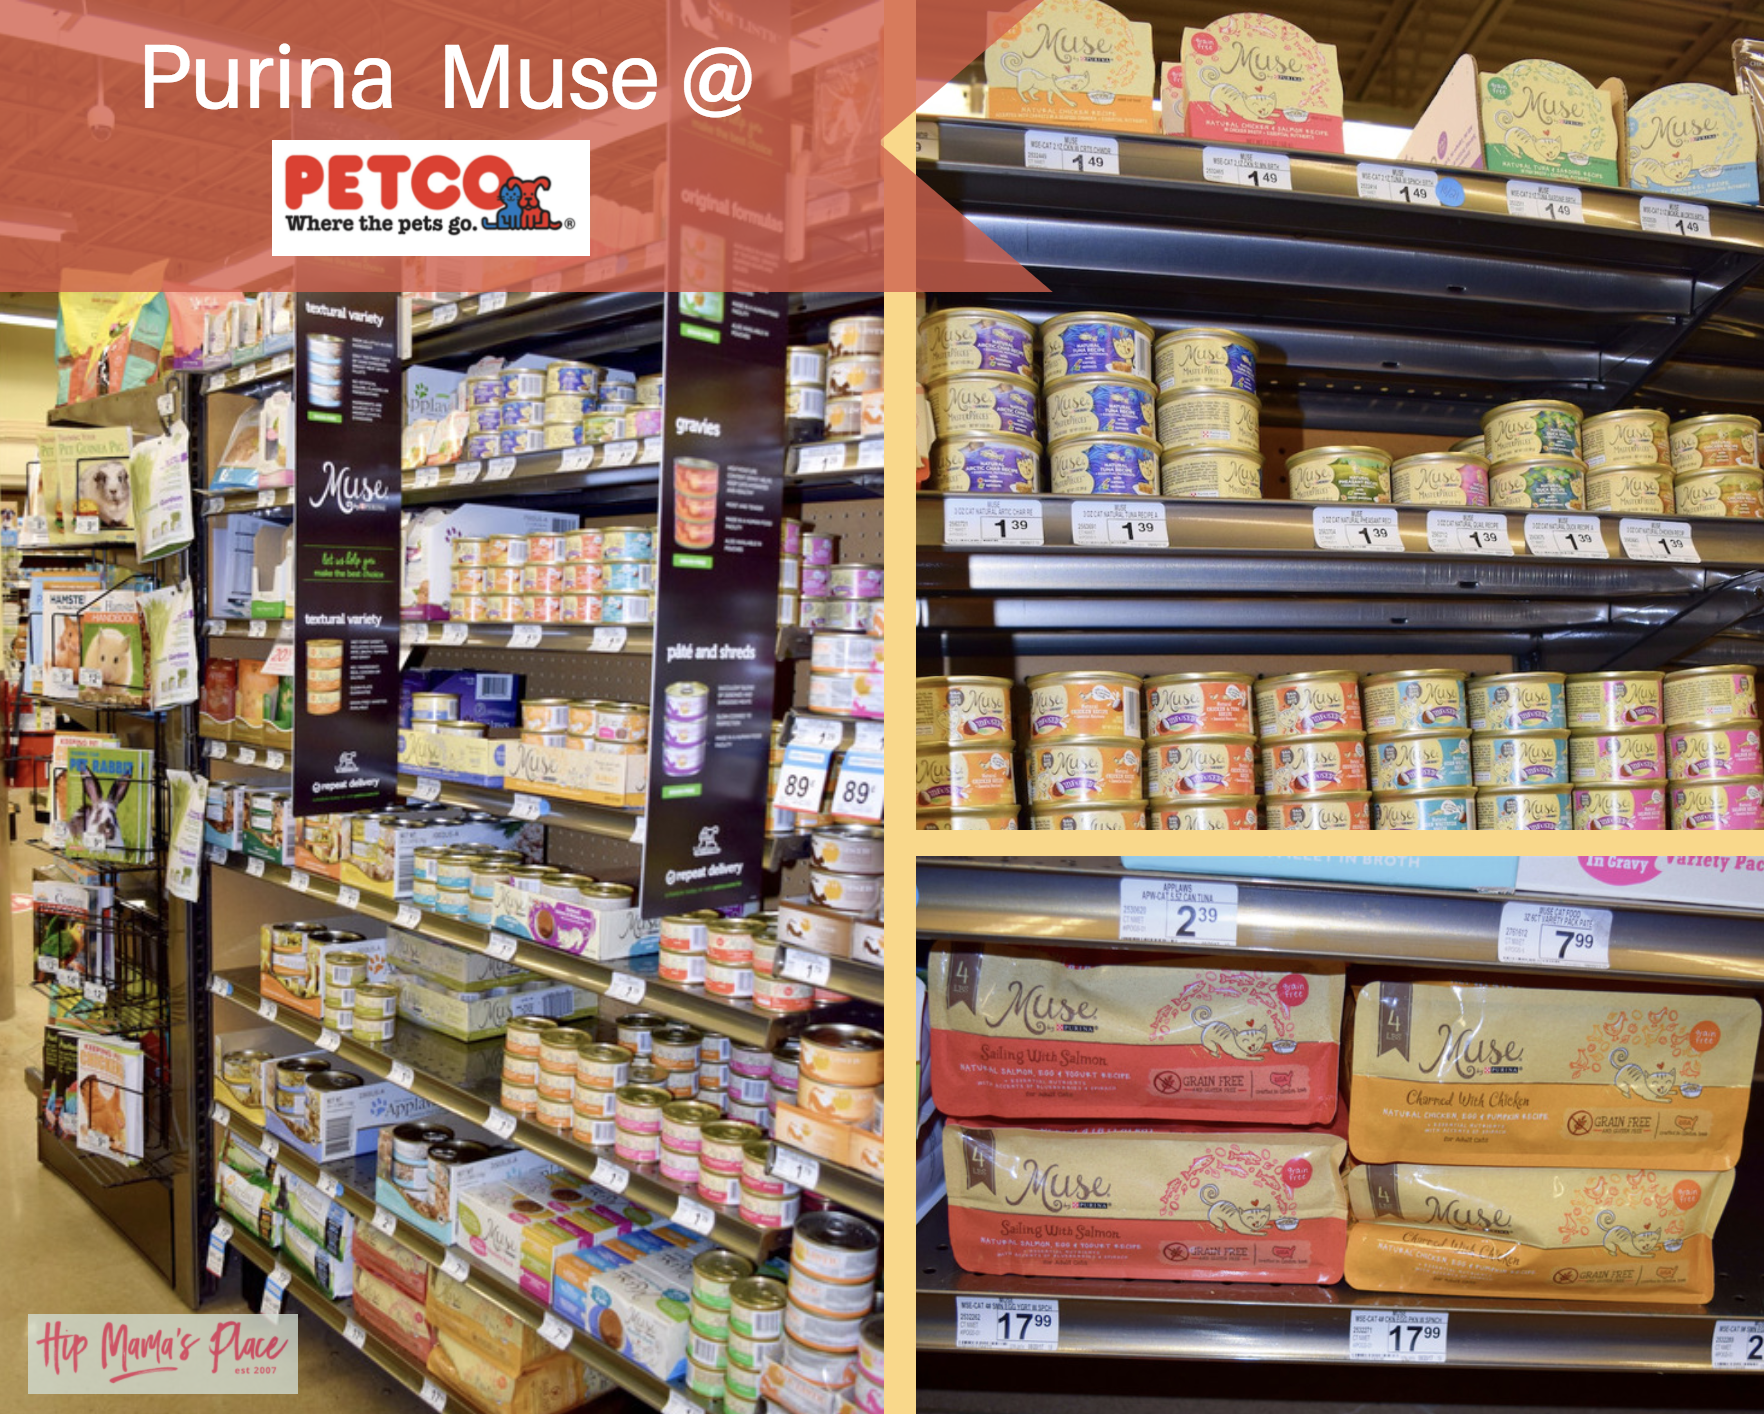 We love the Purina Muse line of wet and dry cat food at Petco!